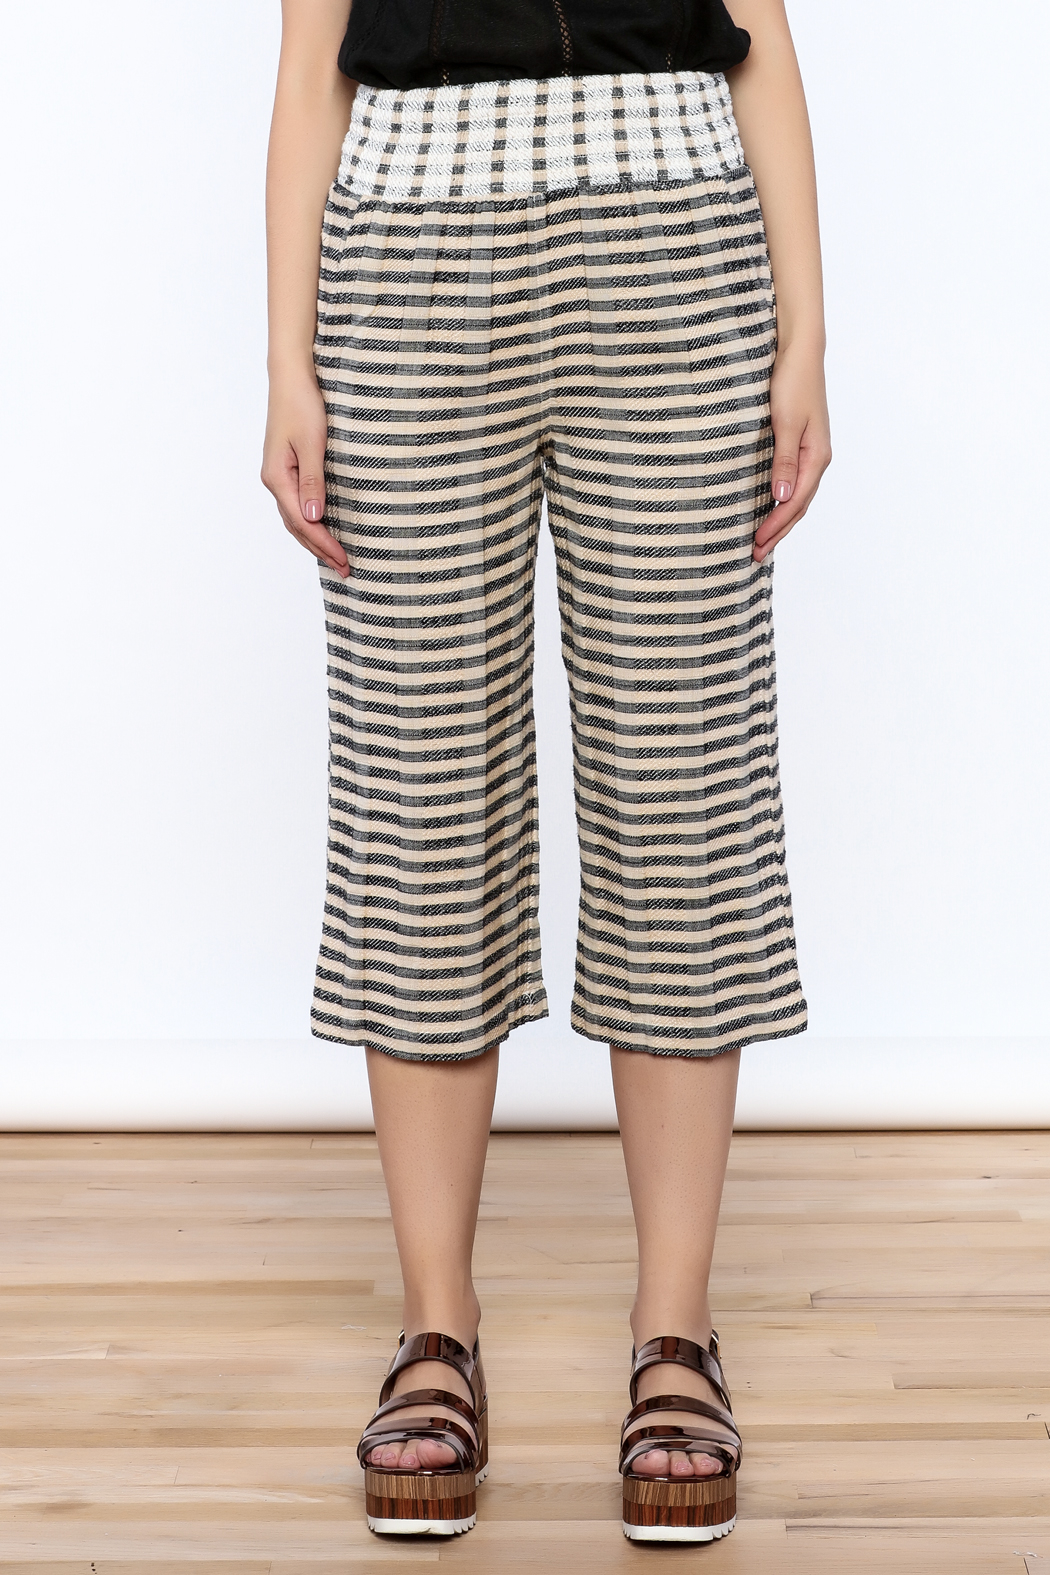 Ace & Jig Orchard Pants - Side Cropped Image